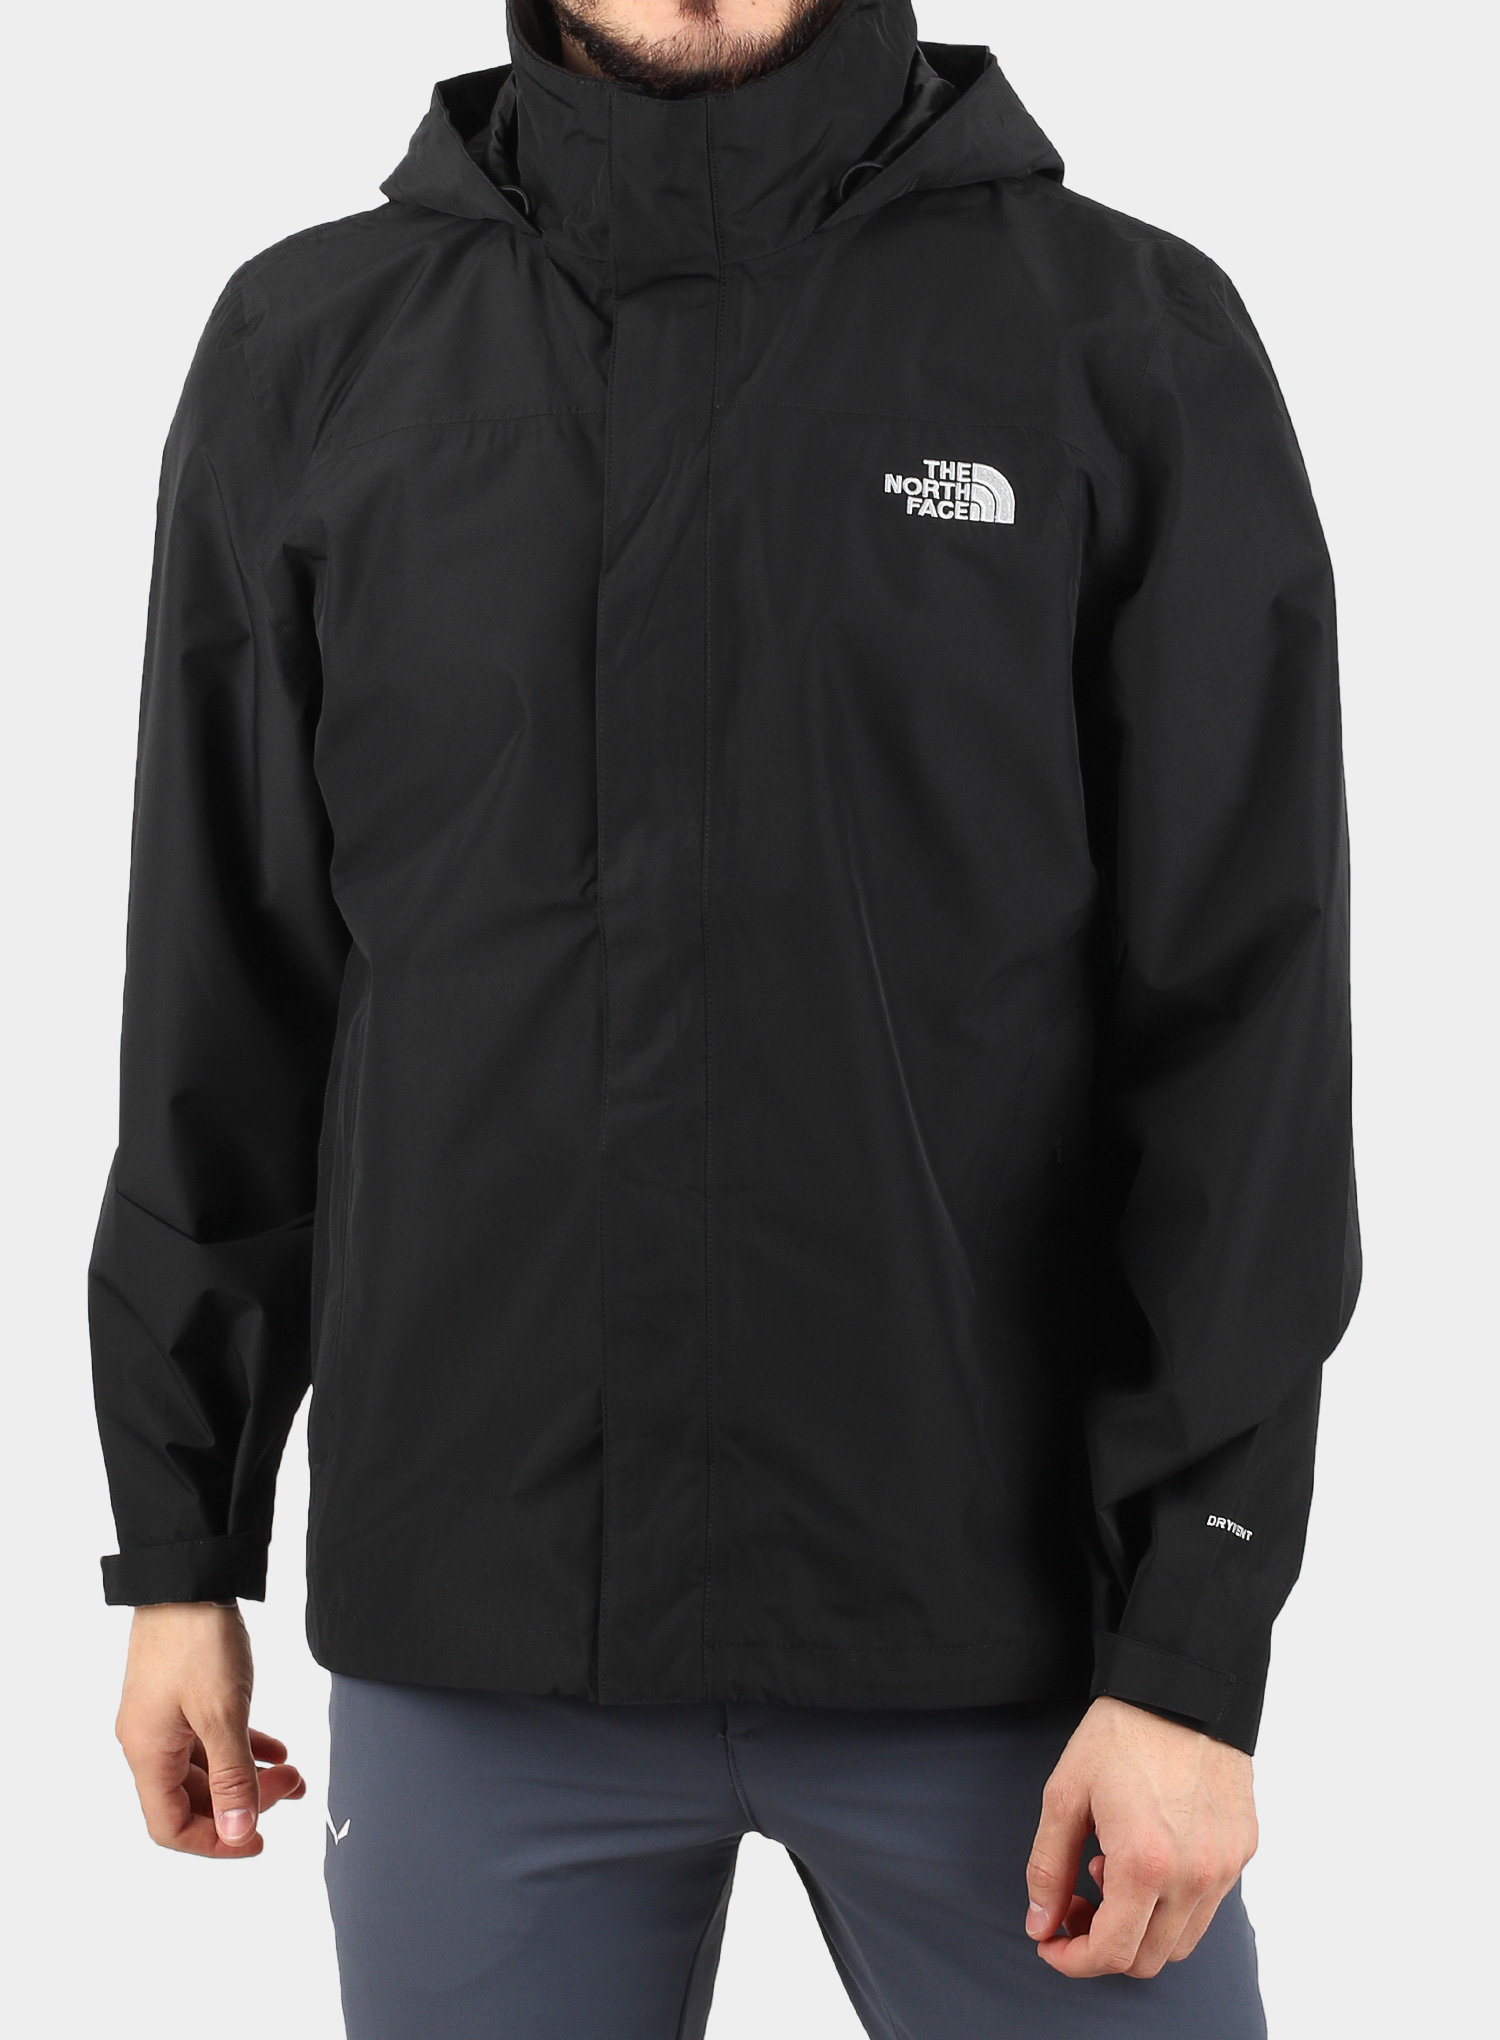 Kurtka The North Face Sangro Jacket - black - zdjęcie nr. 4